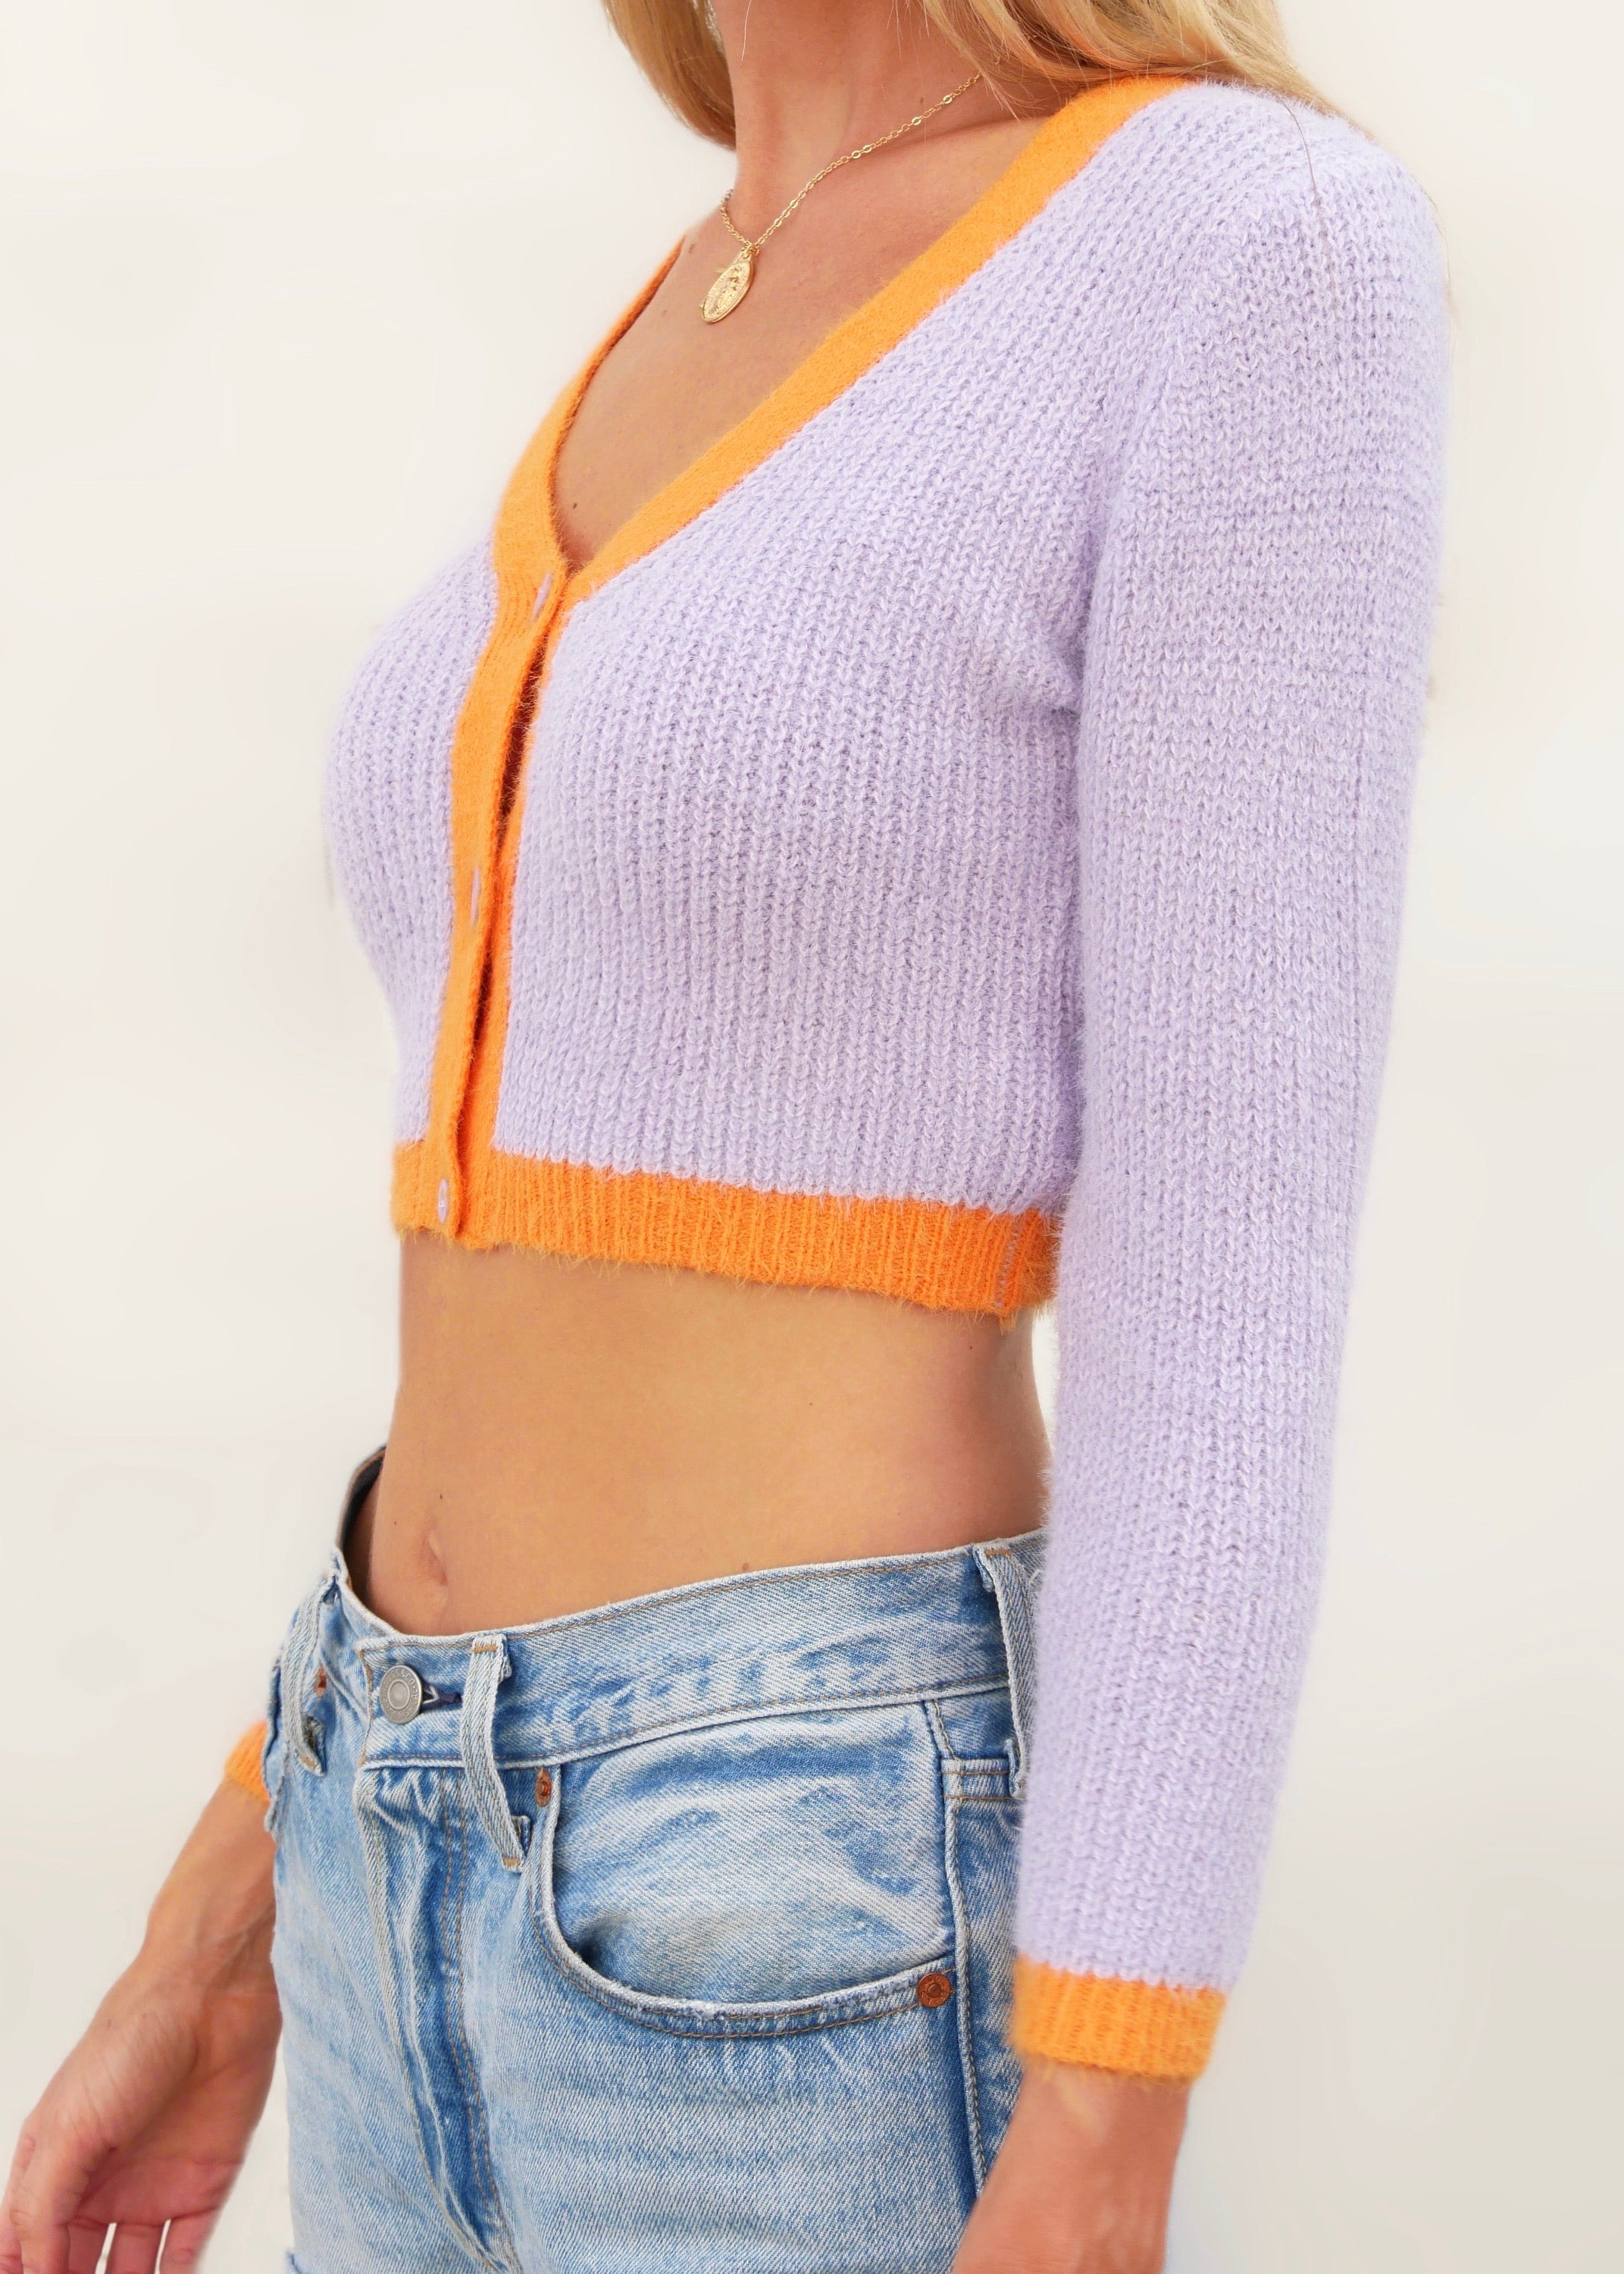 RAINBOW KNIT IN VIOLET